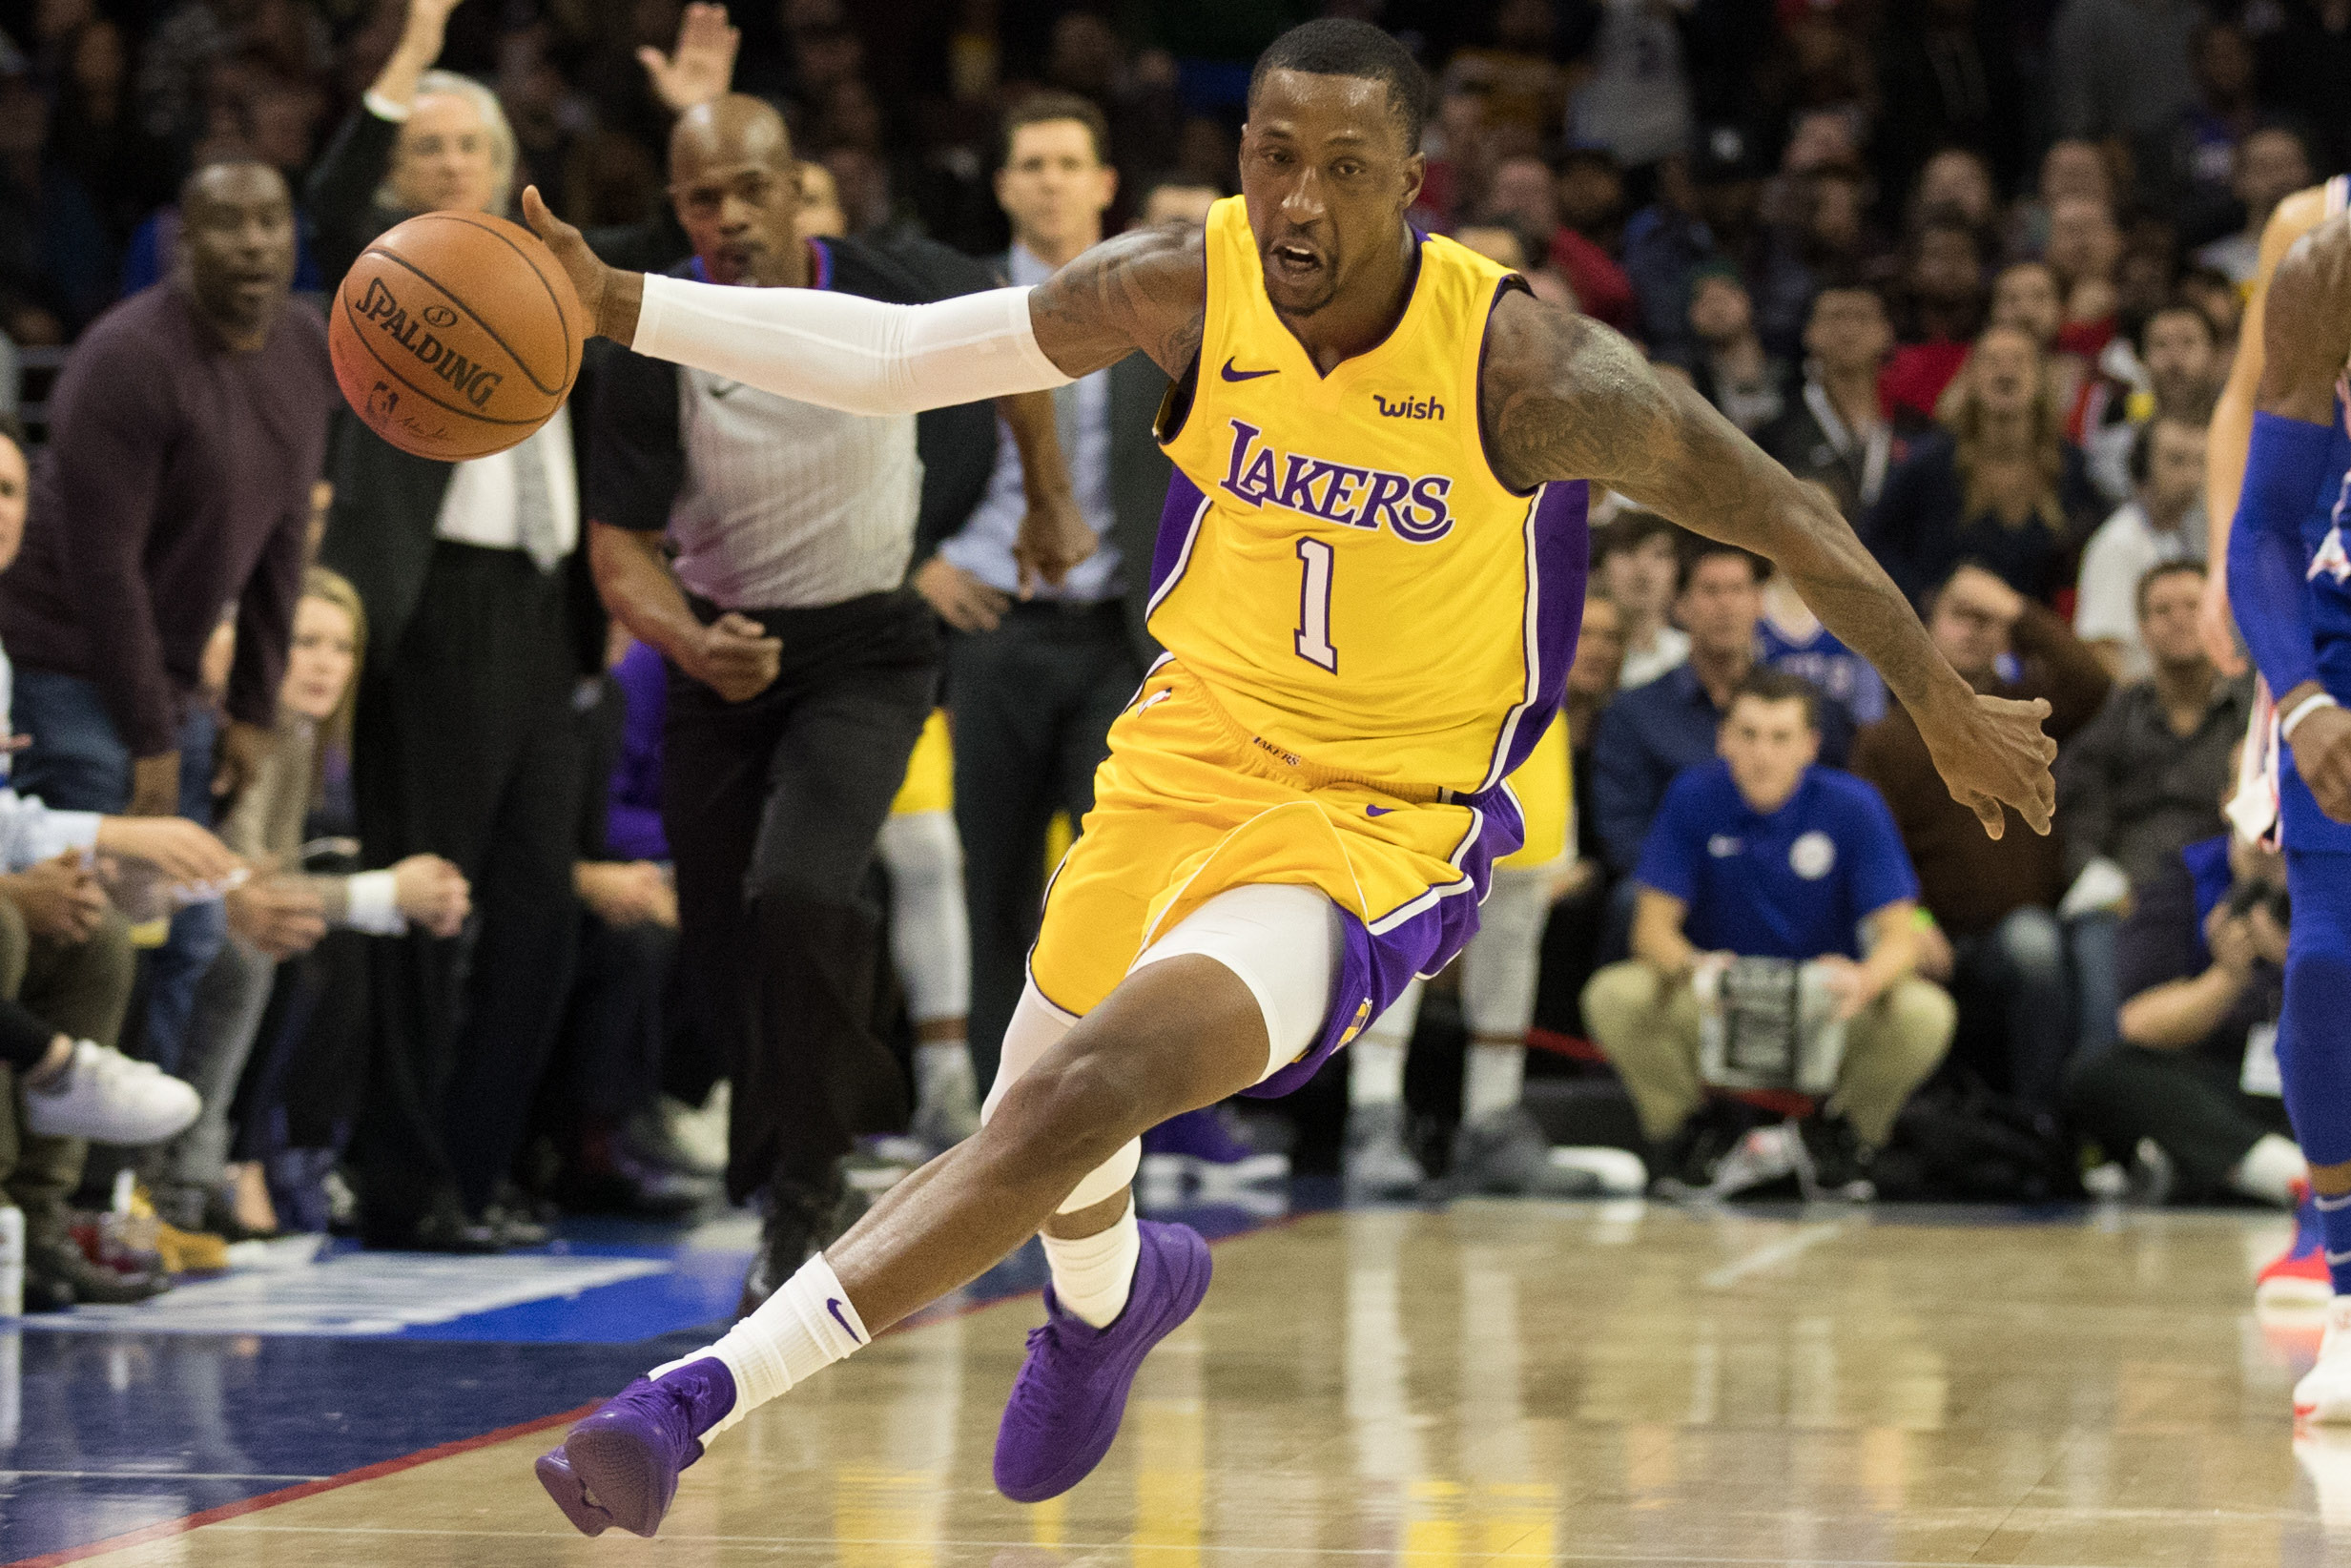 Lakers' Caldwell-Pope will miss three games due to DUI plea